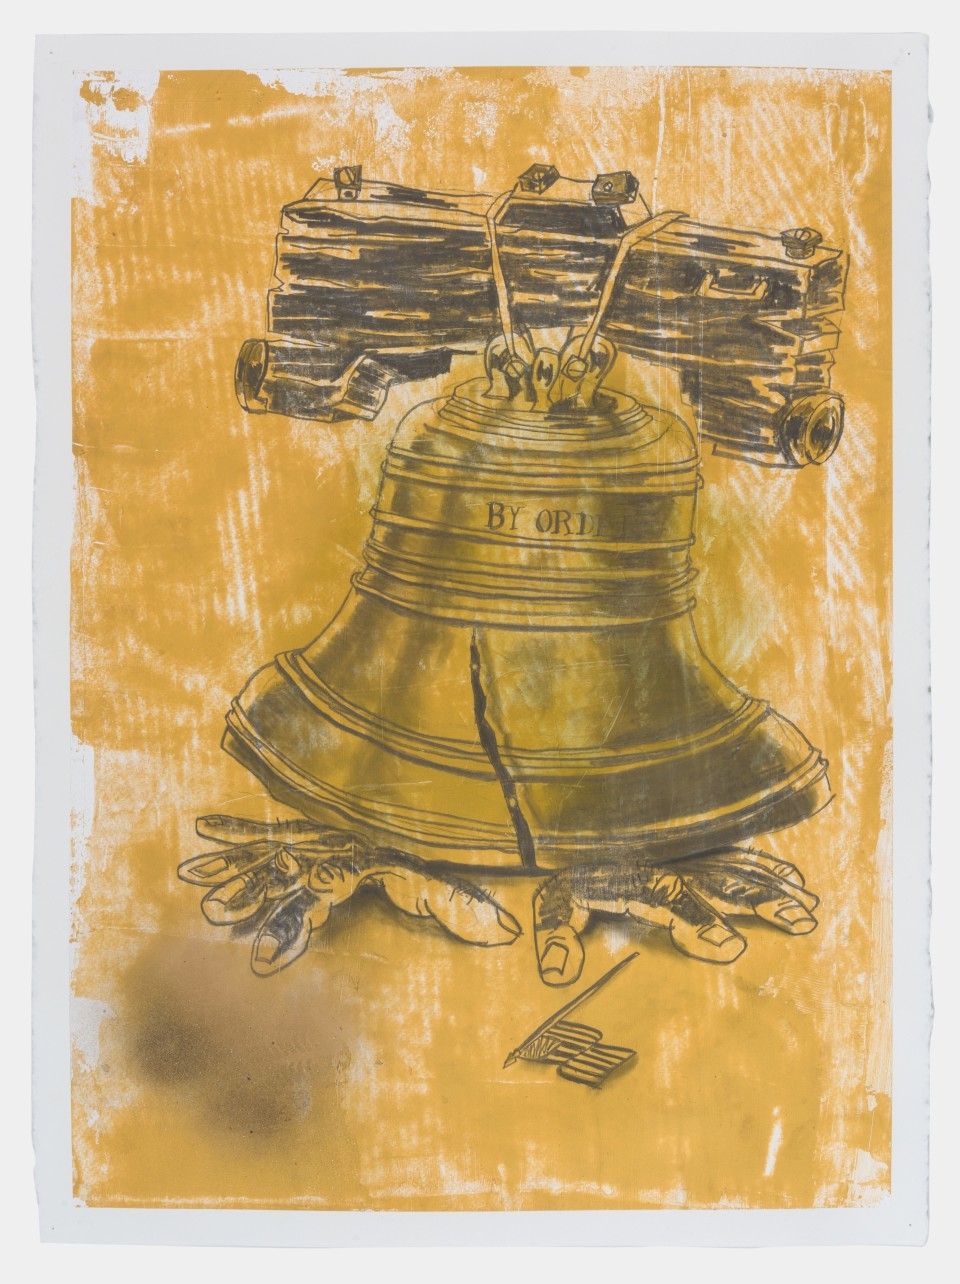 Image: Pat Phillips • Untitled (Works on Paper) • May 15 - June 19, 2021 Opening reception May 15 from 12 - 6pm